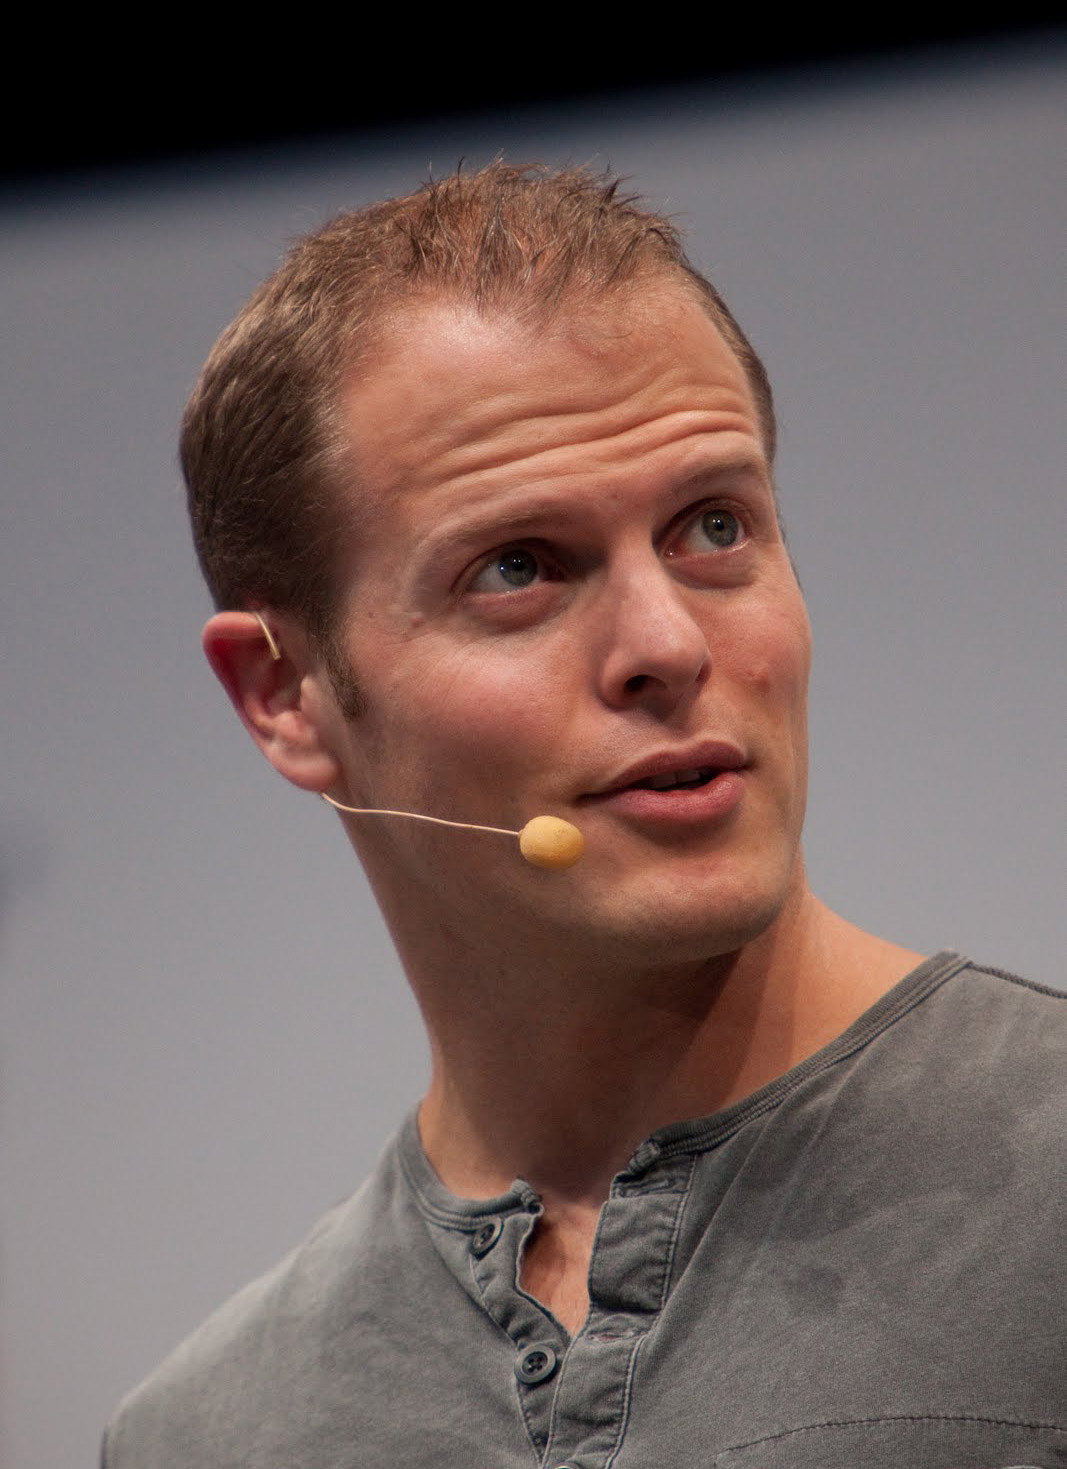 The 41-year old son of father (?) and mother(?) Tim Ferriss in 2018 photo. Tim Ferriss earned a  million dollar salary - leaving the net worth at 20 million in 2018